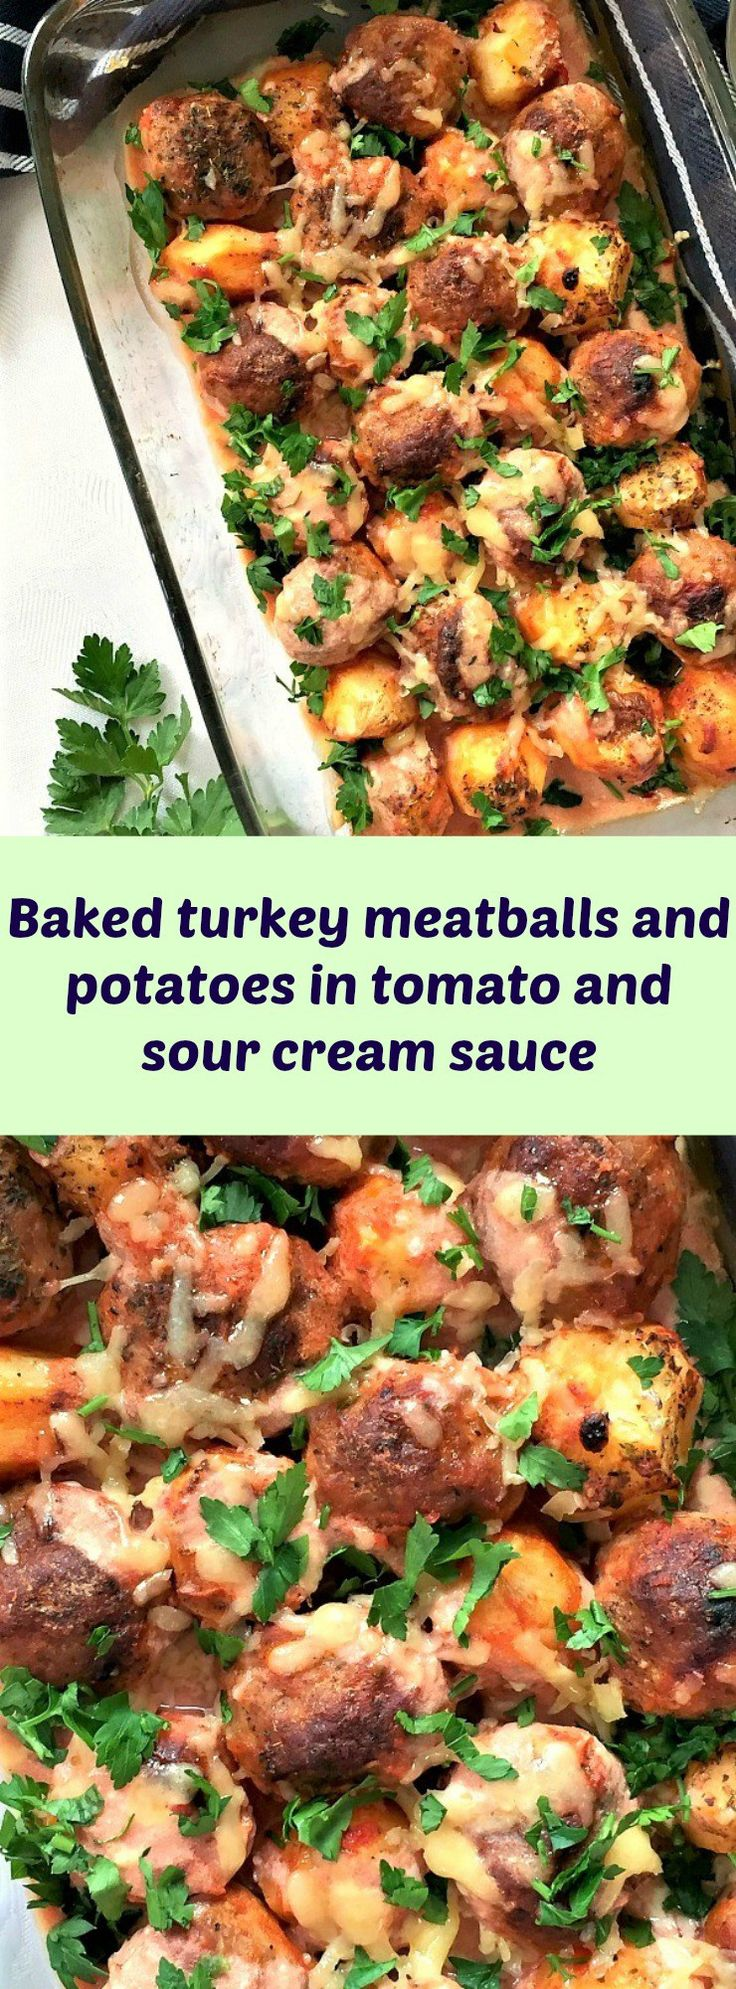 65 best turkey recipes images on pinterest baked turkey meatballs and potatoes in tomato and sour cream sauce forumfinder Choice Image